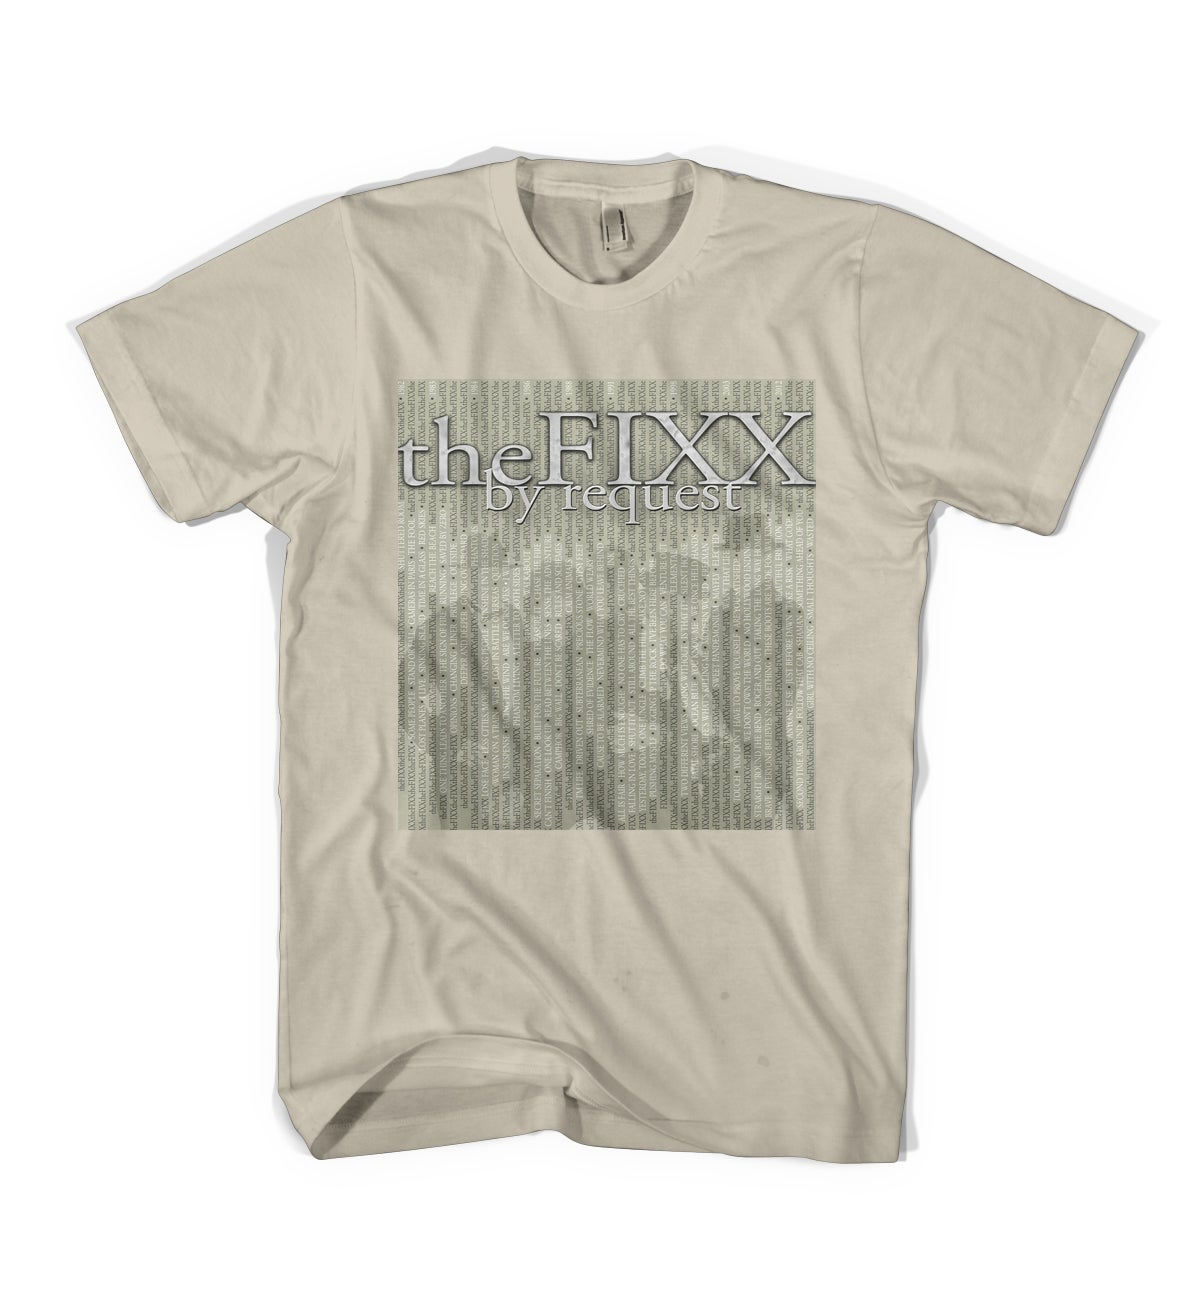 "Image of The Fixx - ""Request"" 2015 Tour Tee"